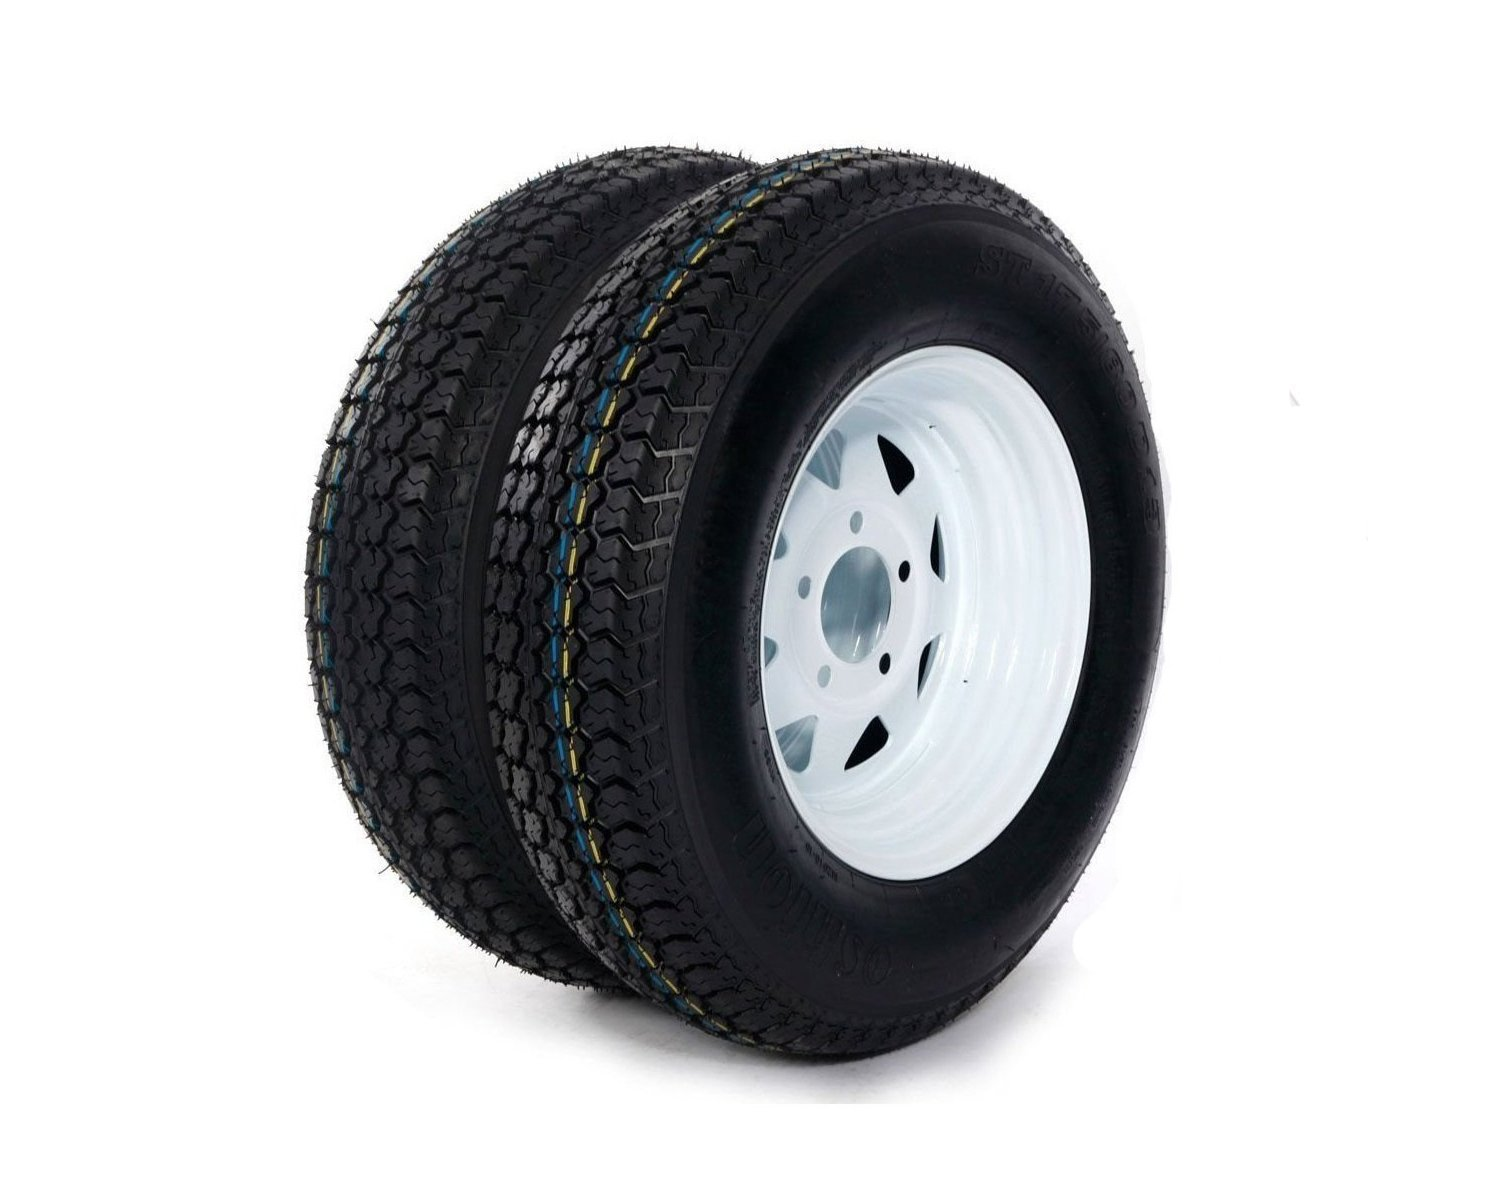 MILLION PARTS 2pc 13 White Spoke Trailer Wheel with Bias ST175/80D13 Tire Mounted 5x4.5 bolt circle